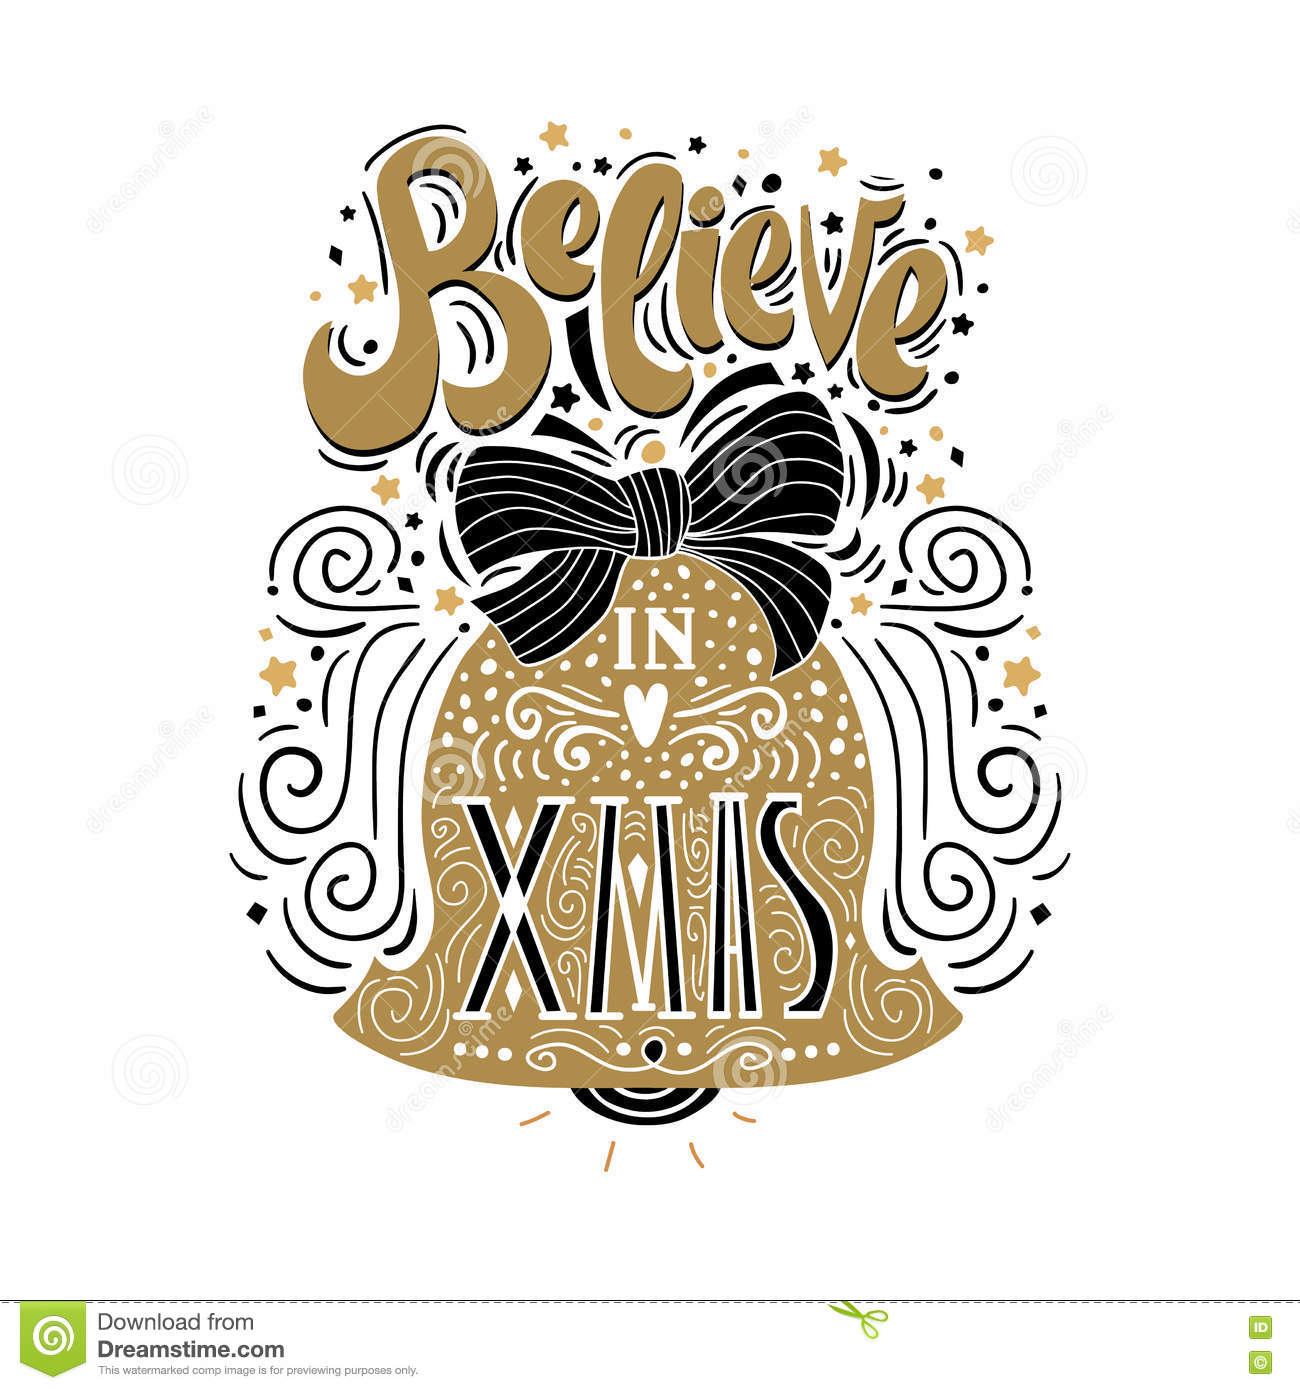 Believe In X Mas- Christmas Typographic Poster, Greeting Card, Print. Winter Holiday Saying.Hand ...